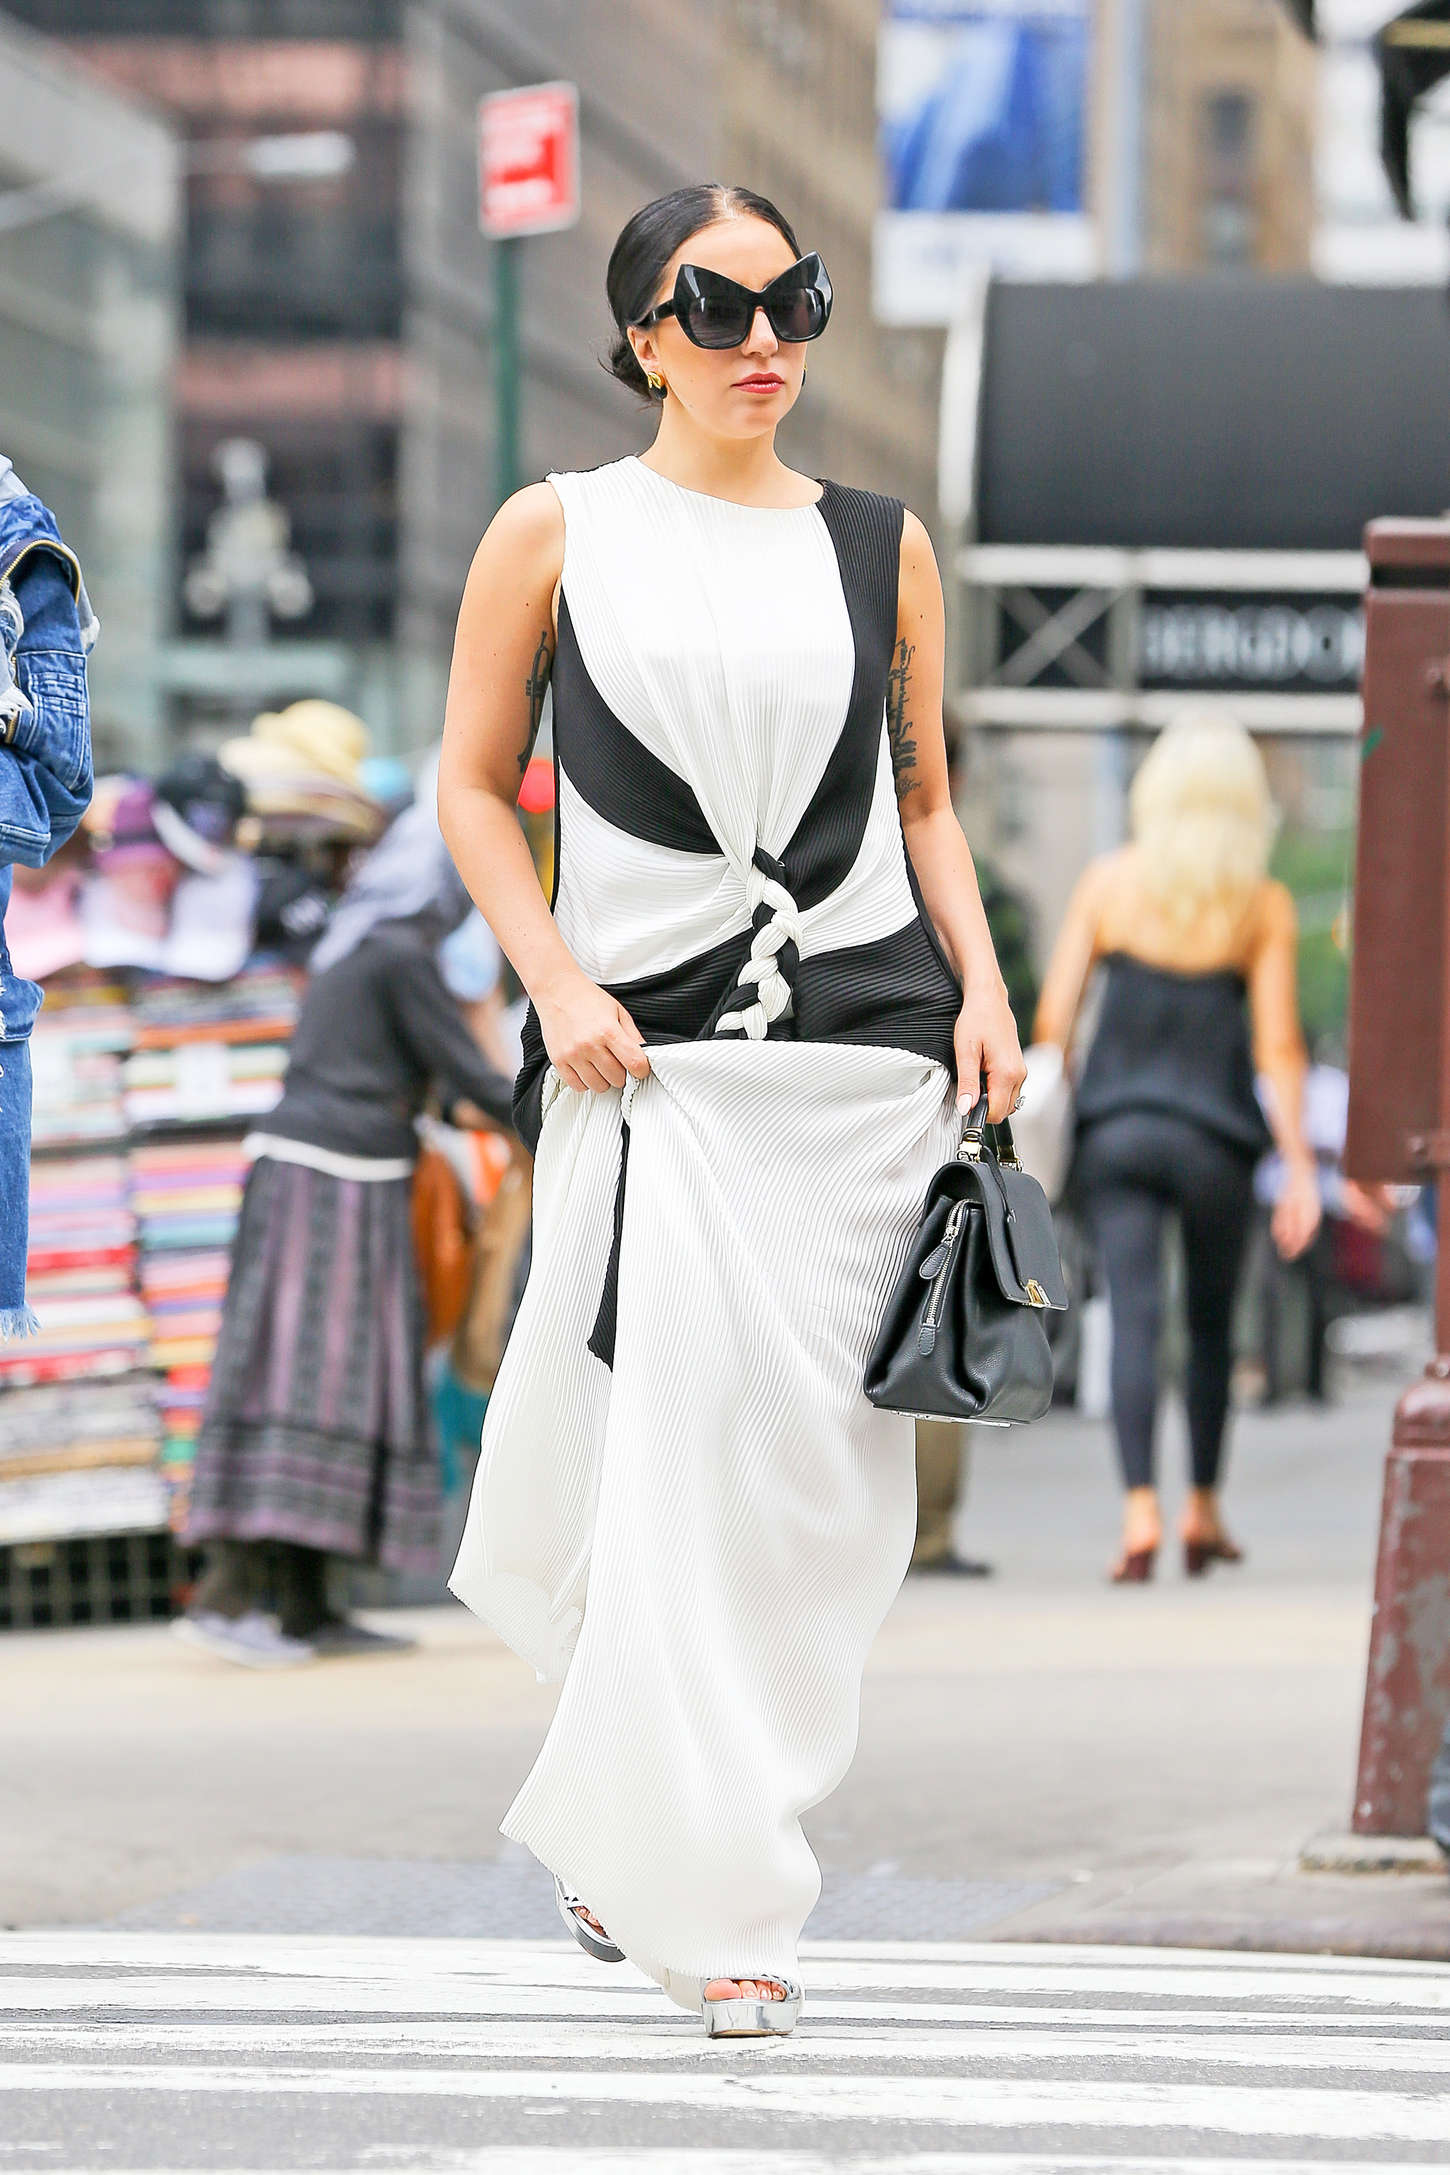 Lady Gaga in Long Dress Out in NYC